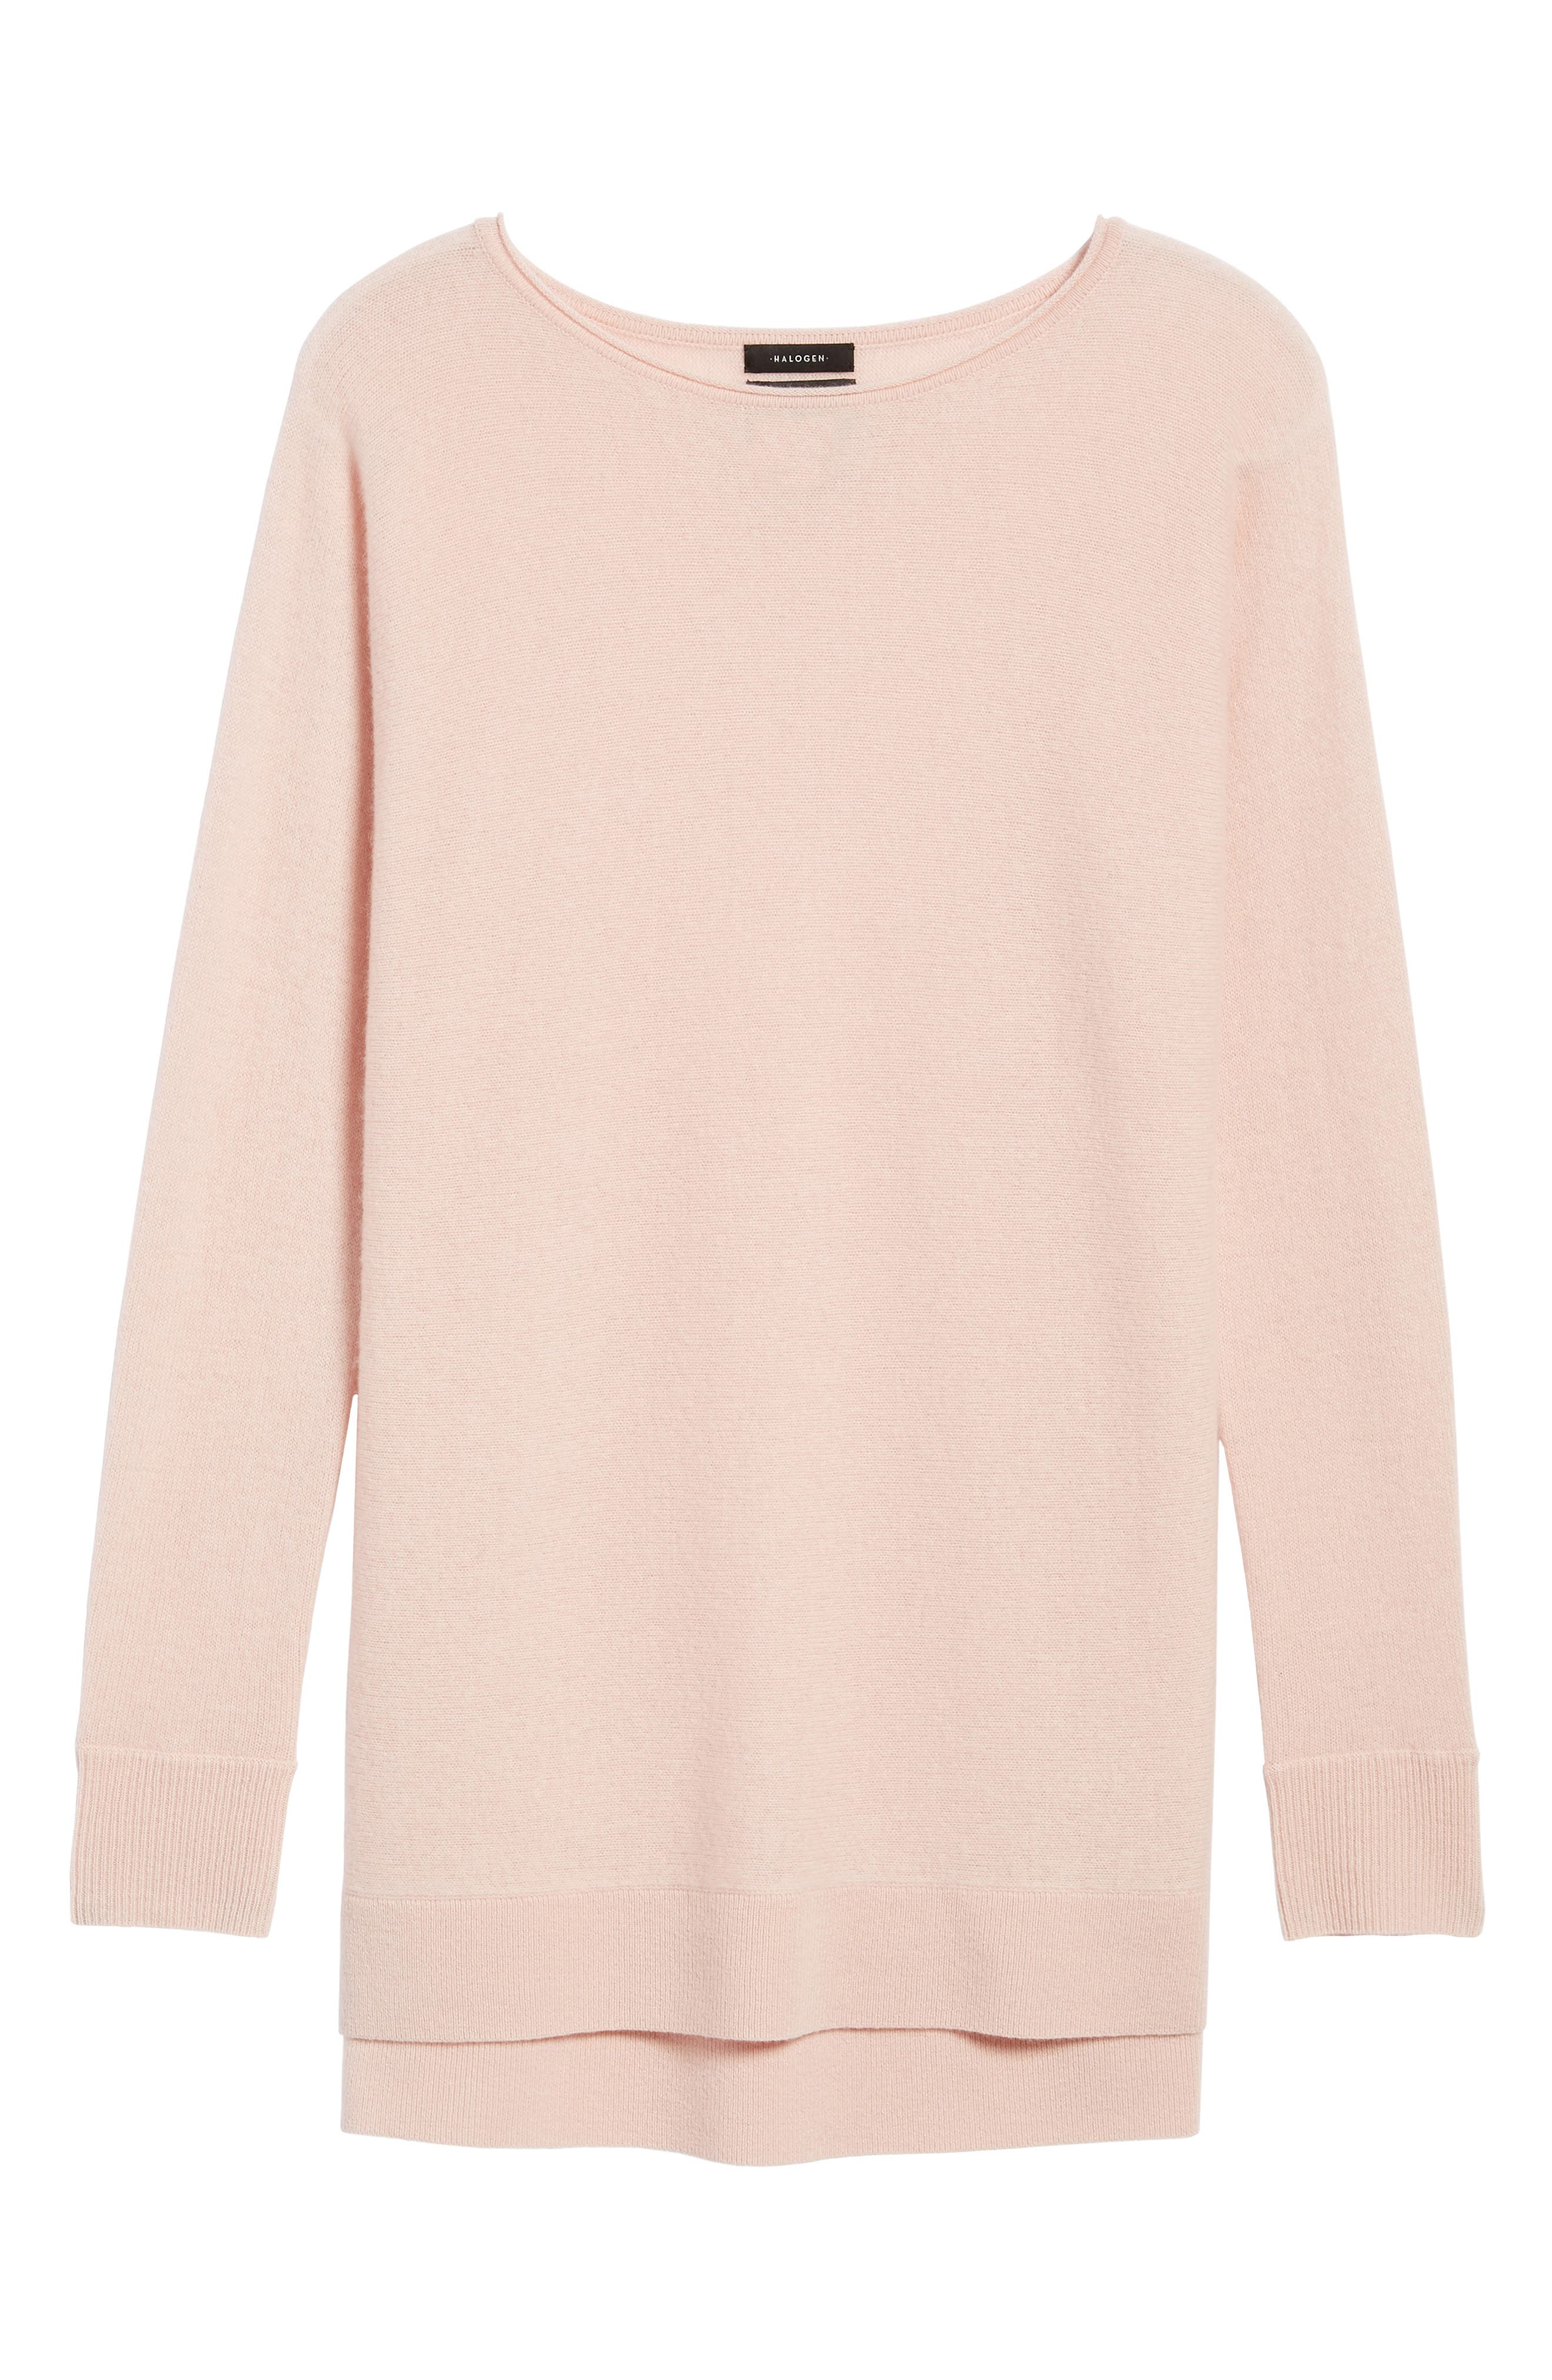 High/Low Wool & Cashmere Tunic Sweater,                             Alternate thumbnail 6, color,                             Pink Smoke